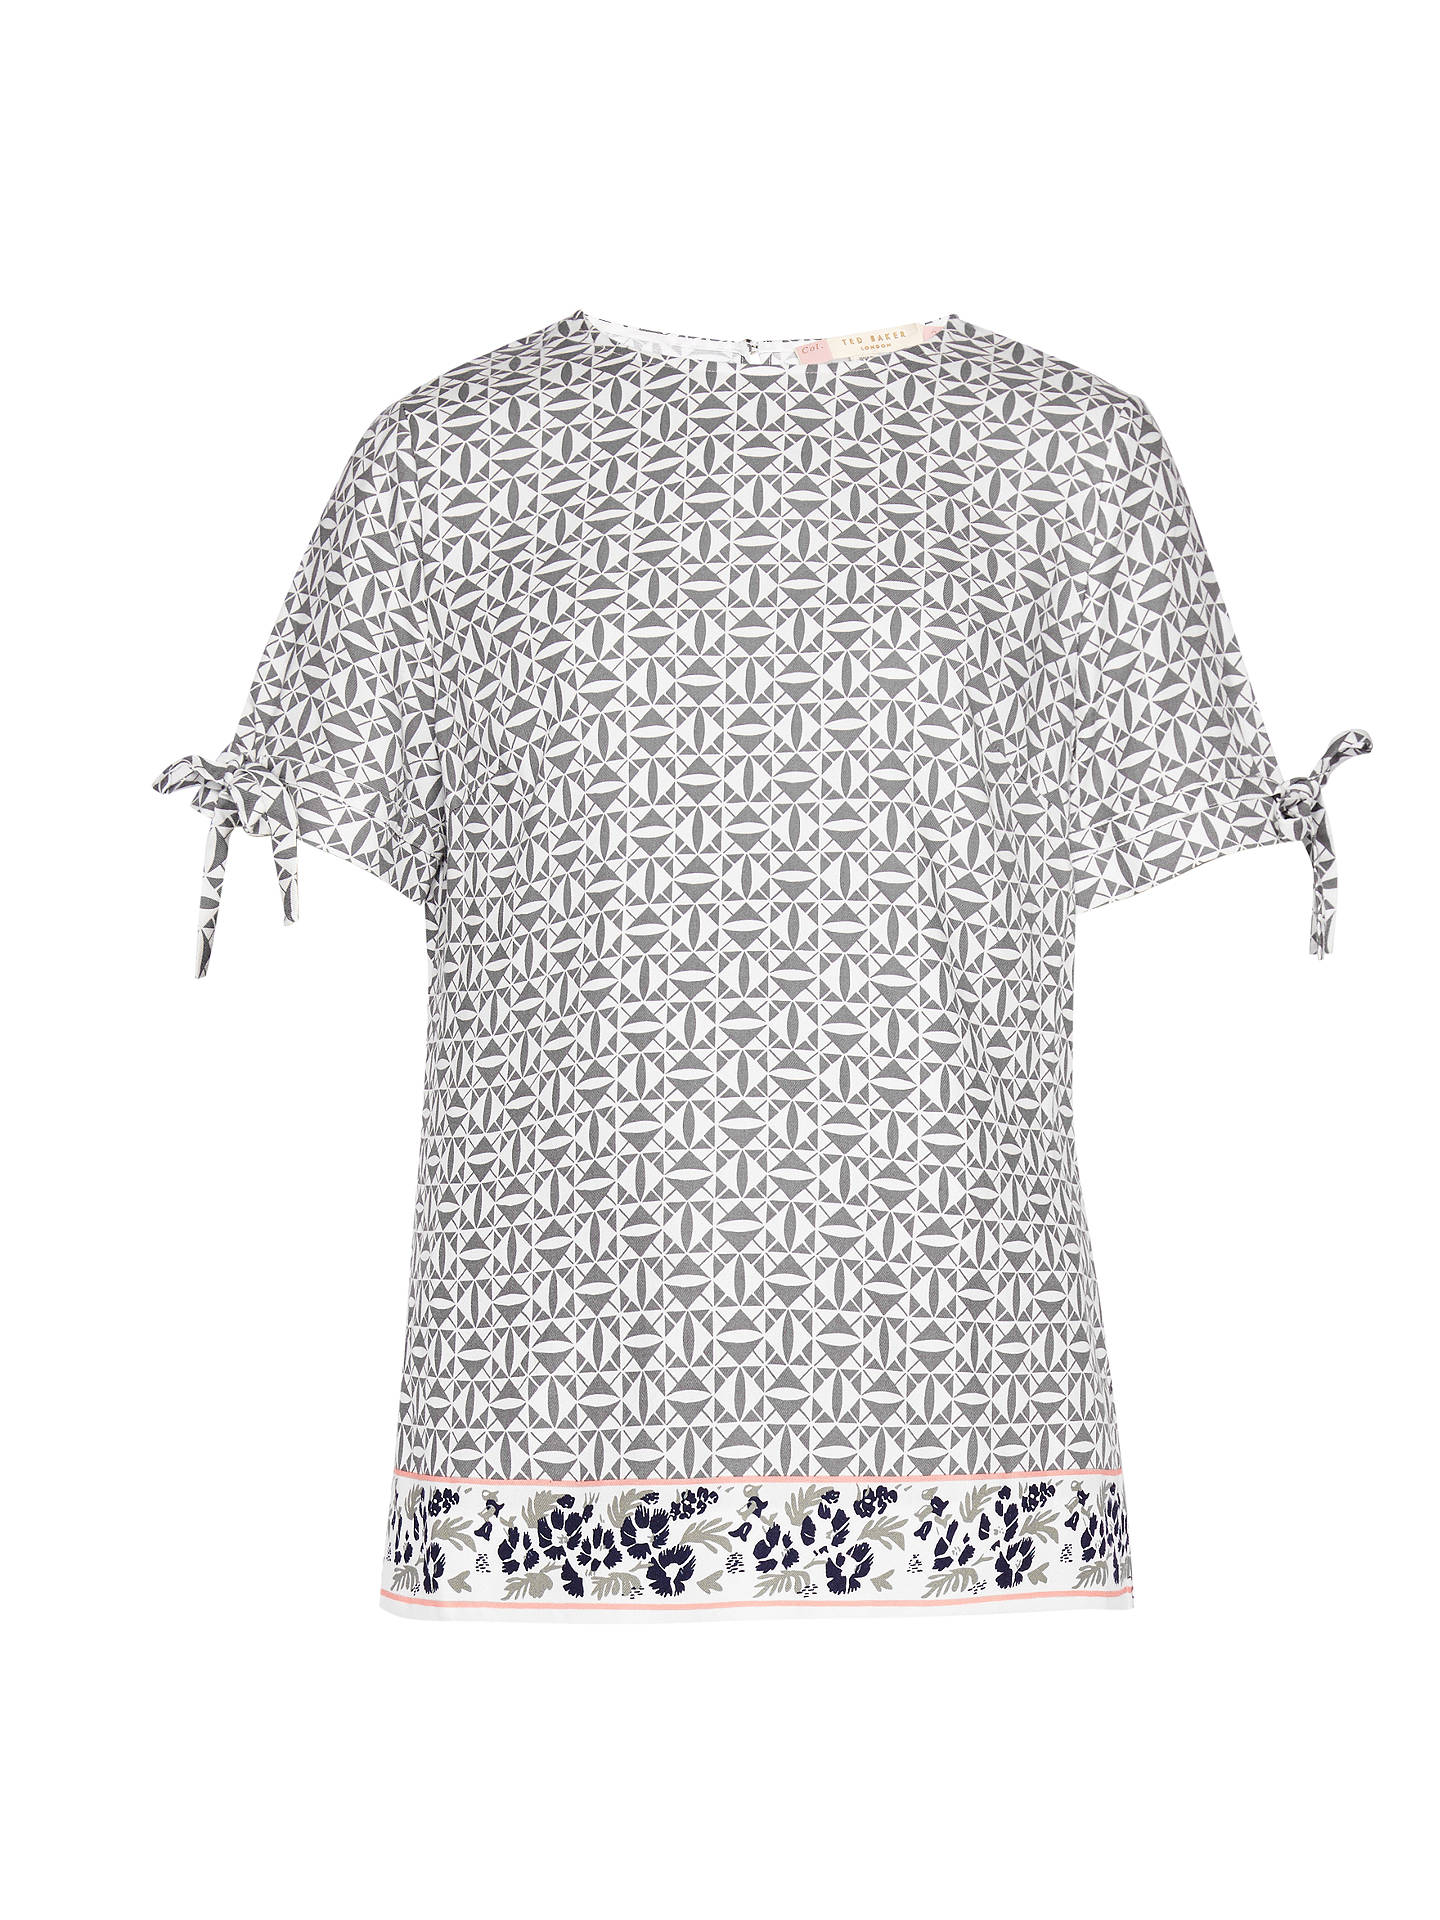 3dc79719de3159 ... BuyTed Baker Colour By Numbers Laylei Geo Floral Print T-Shirt